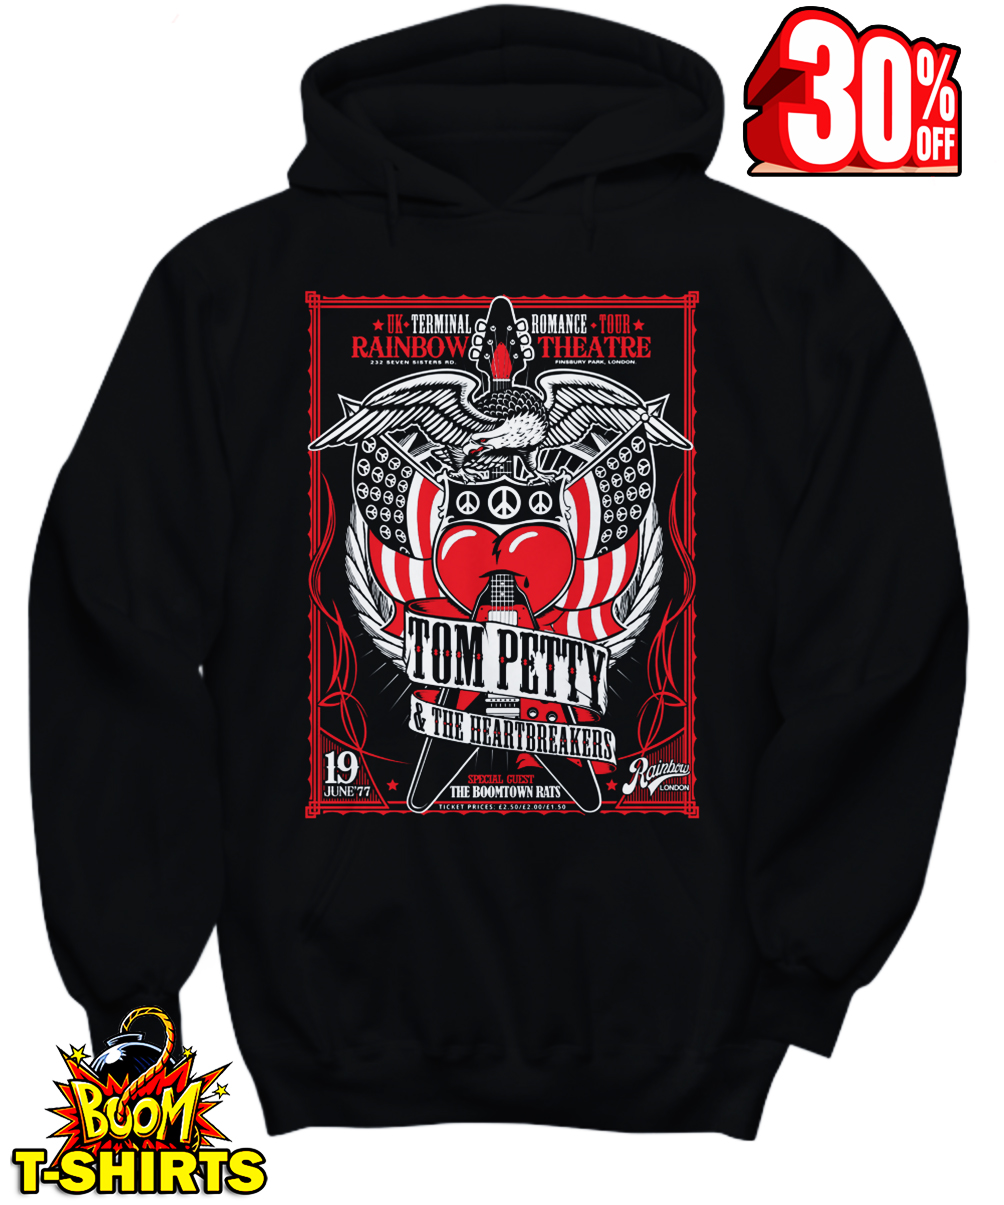 Tom Petty and The Heartbreakers hoodie